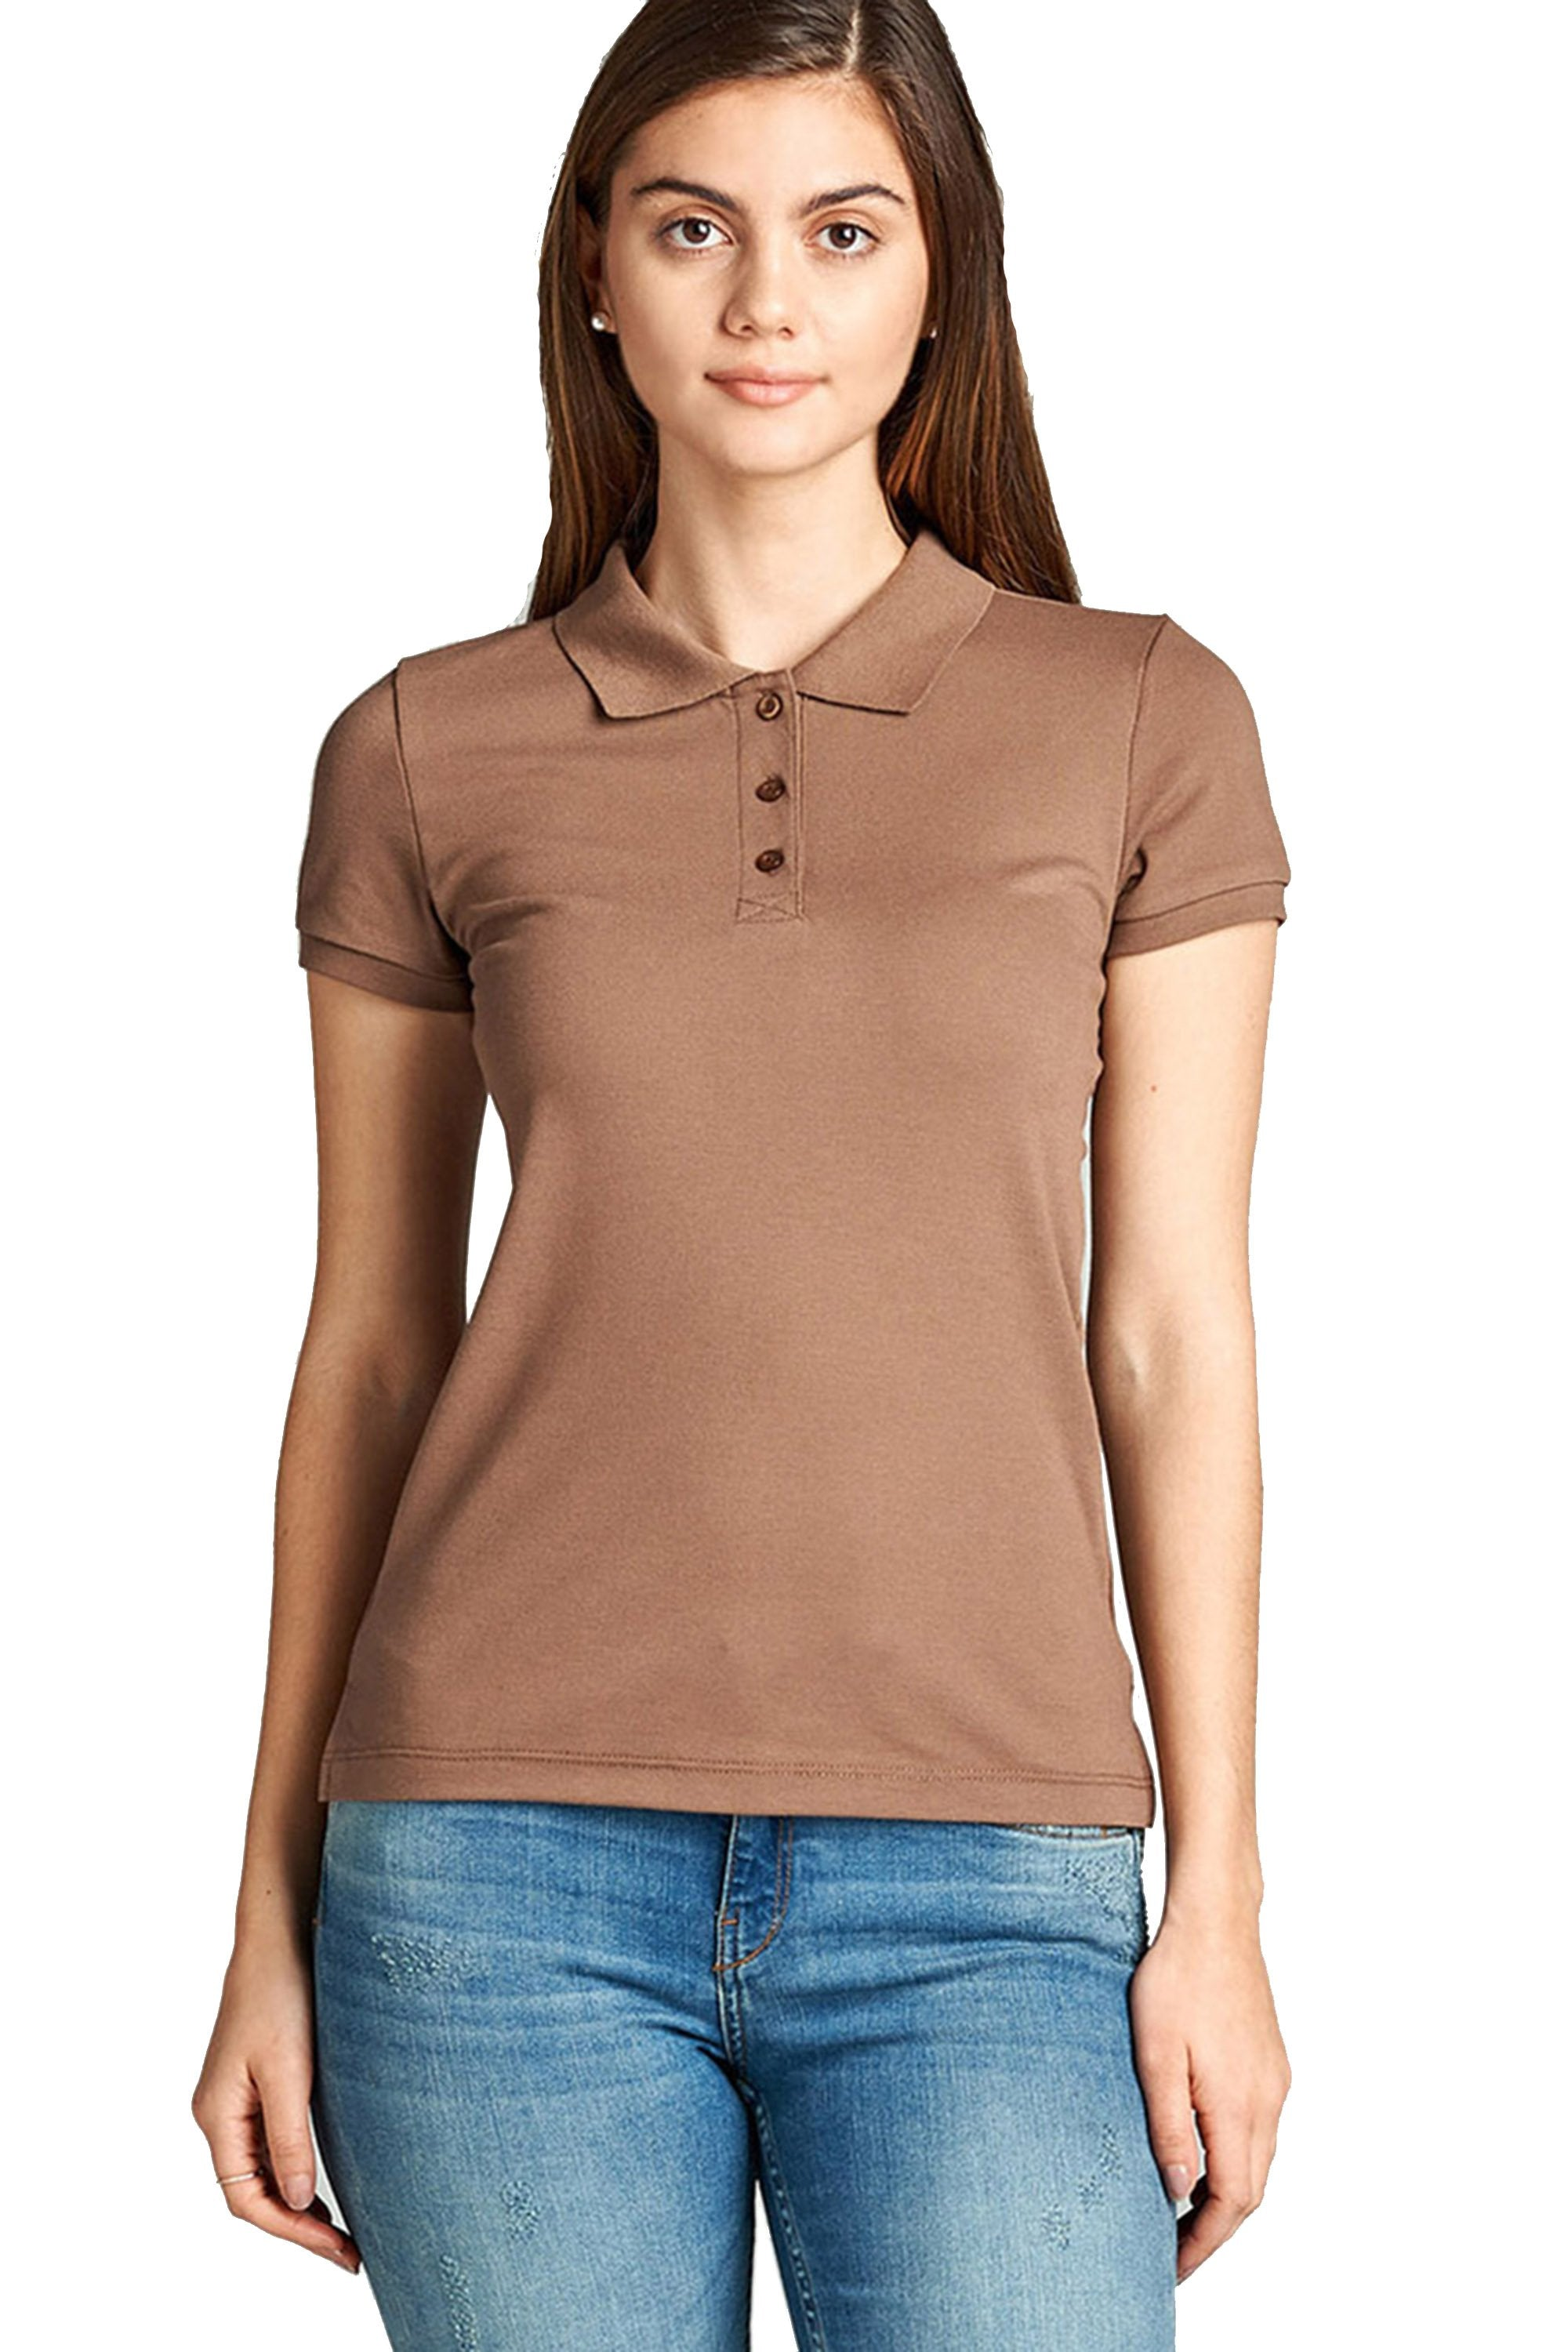 Khanomak Women's Classic Short Sleeve Pique Polo Shirt Top